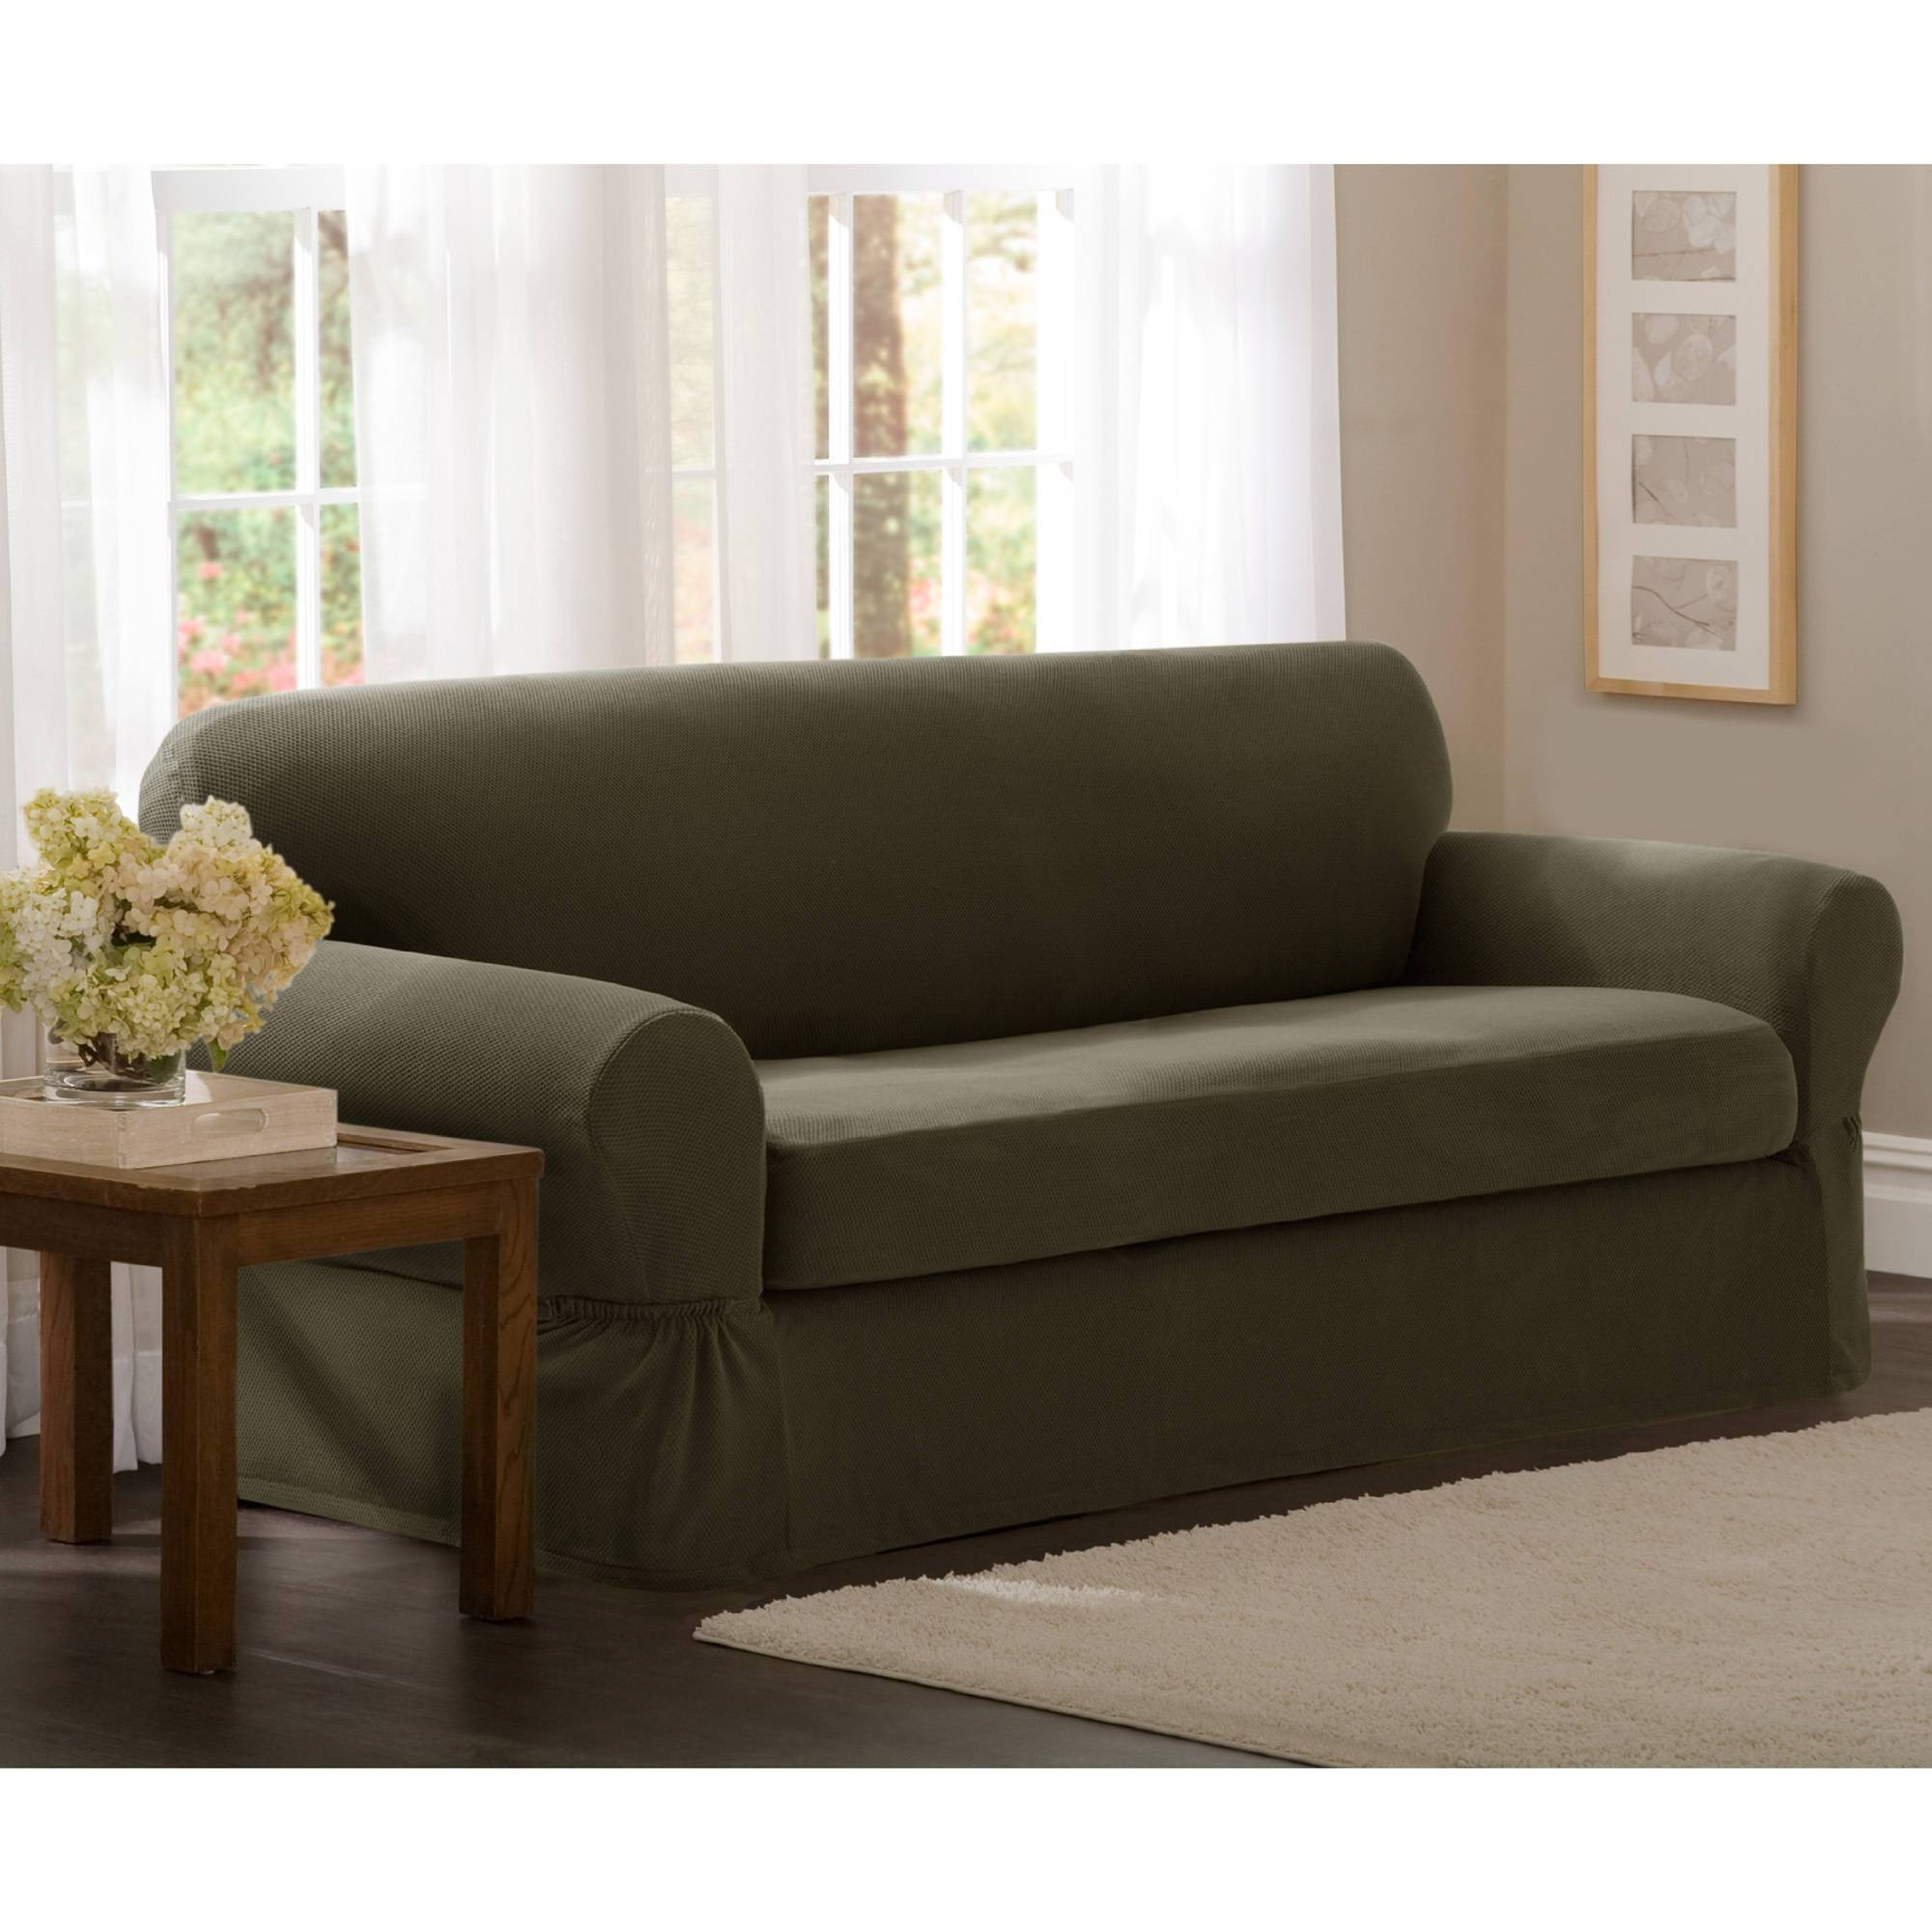 Maytex Stretch Pixel 2-Piece Loveseat Slipcover - Walmart pertaining to Sofa and Loveseat Covers (Image 8 of 15)